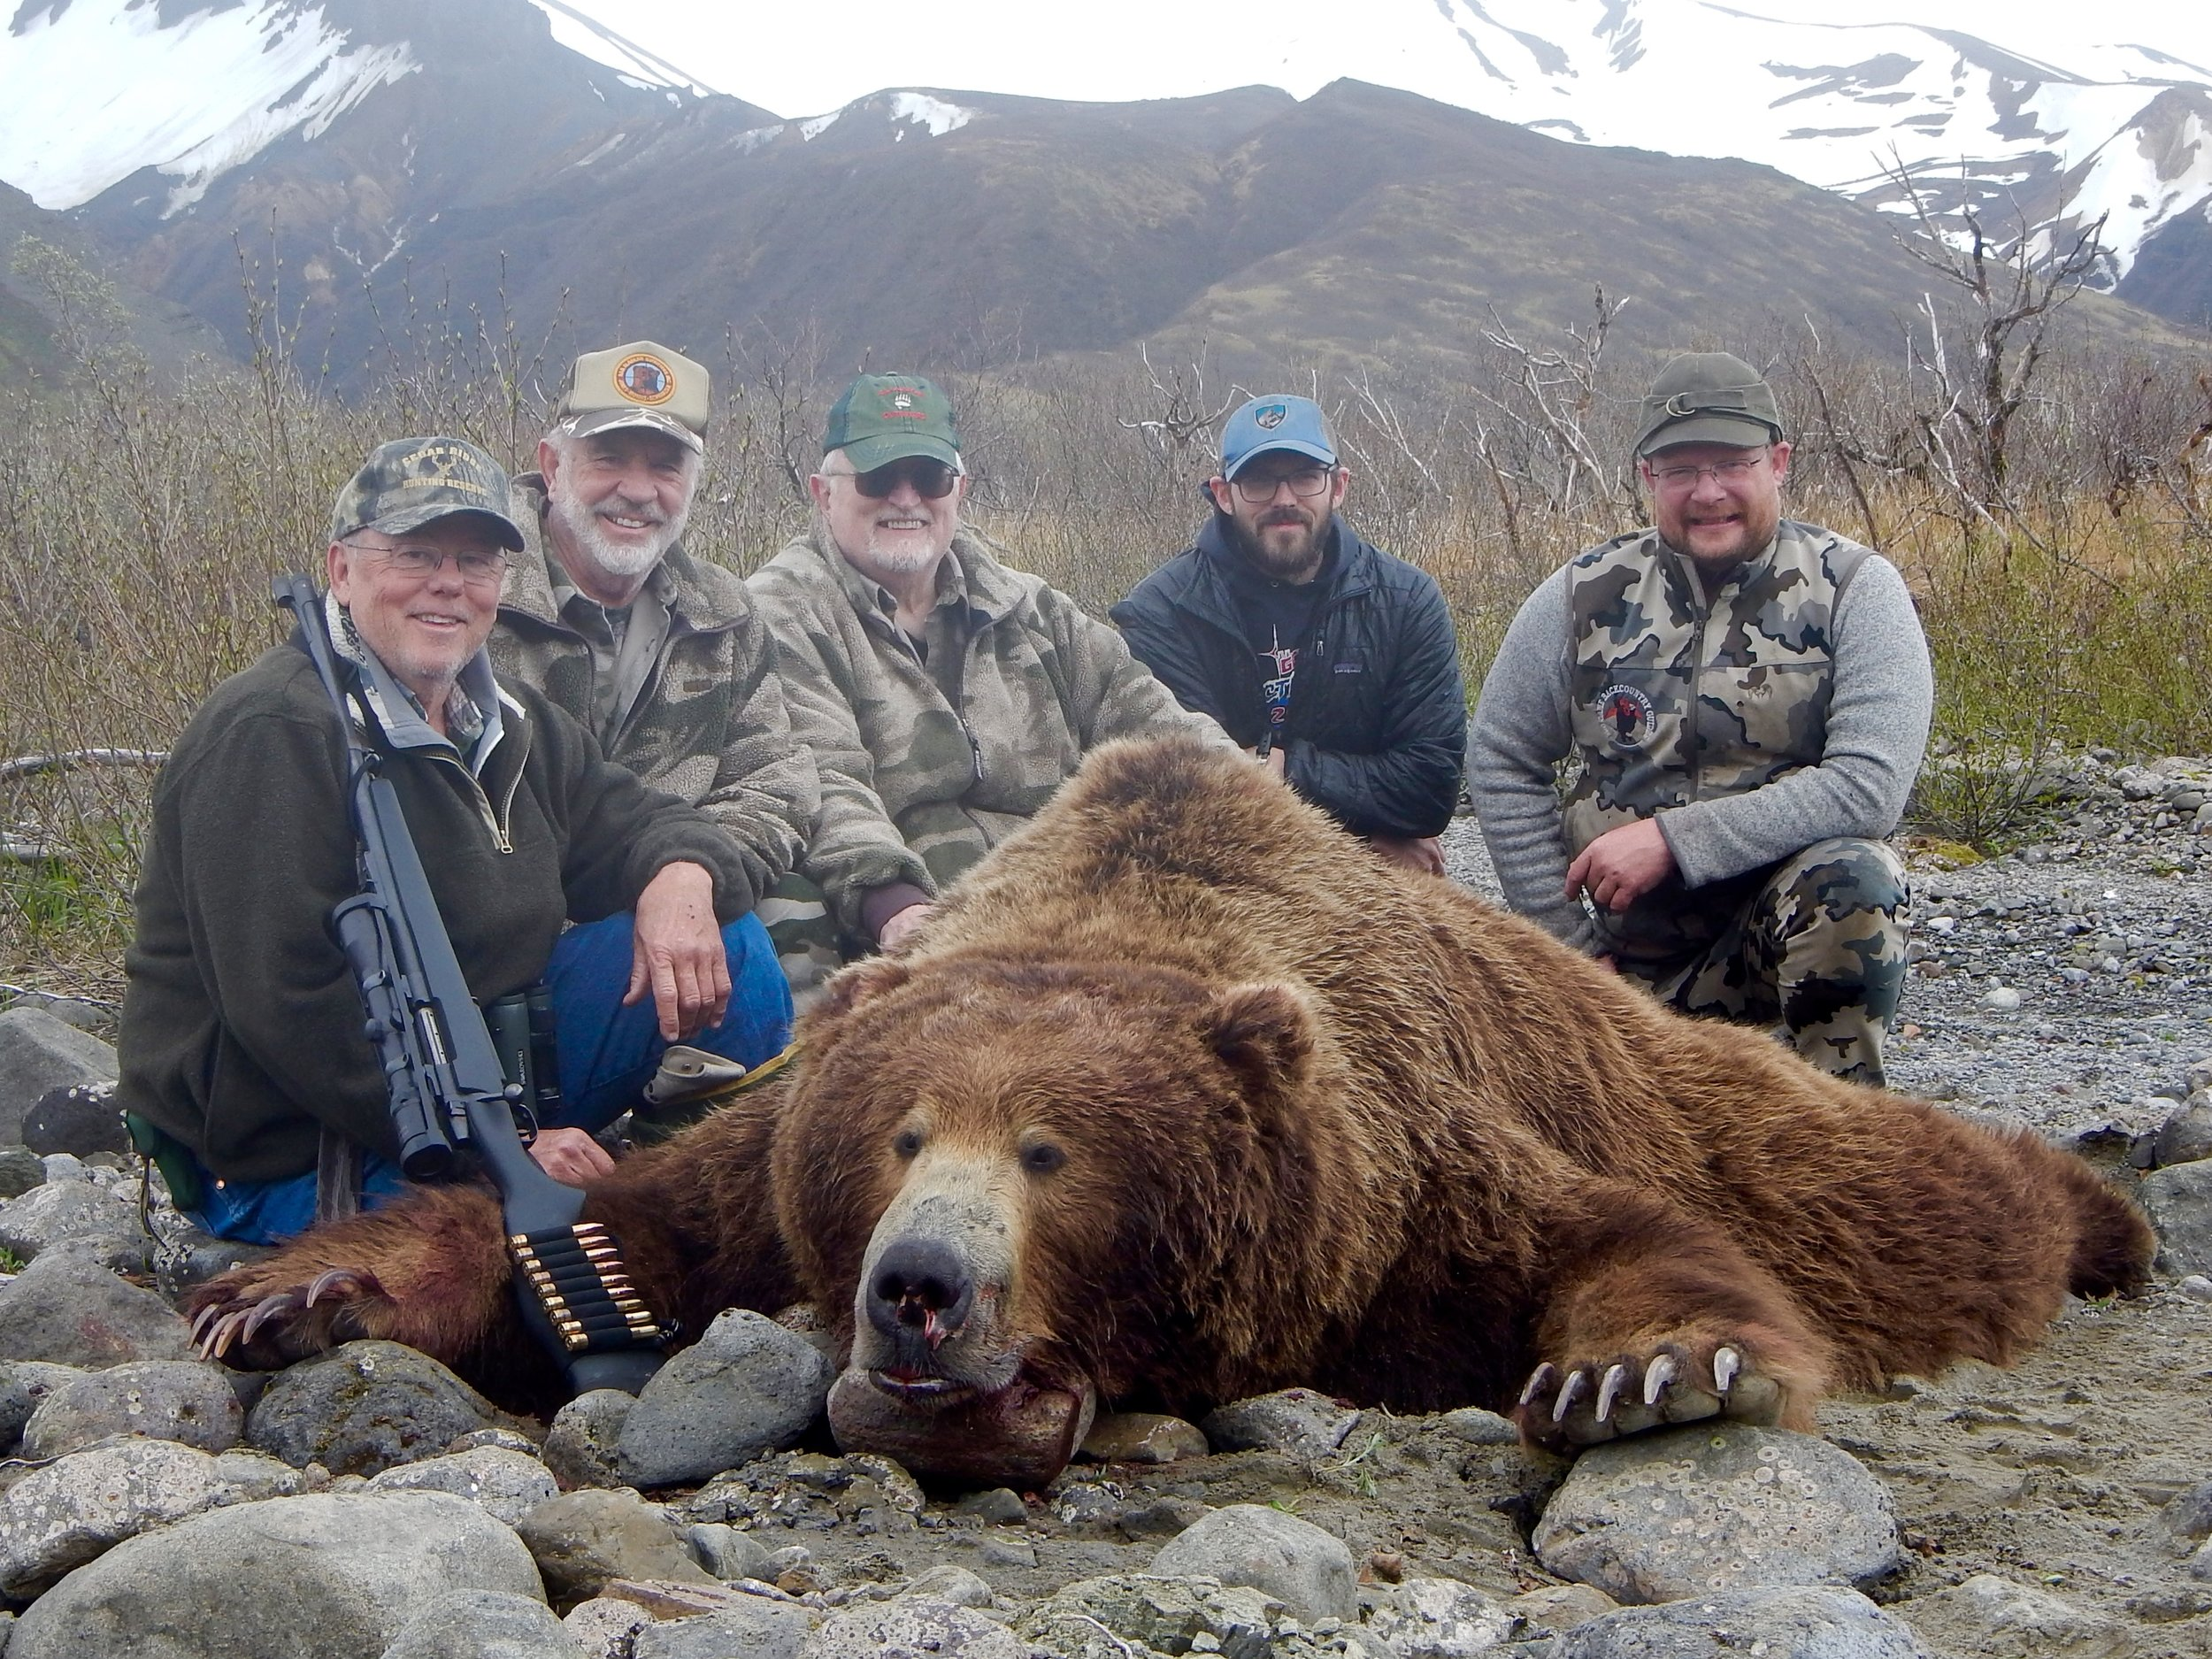 (L to R) Matt, me, Brent, Rob Wing and Riley Pitts gathered around Matt's bear.